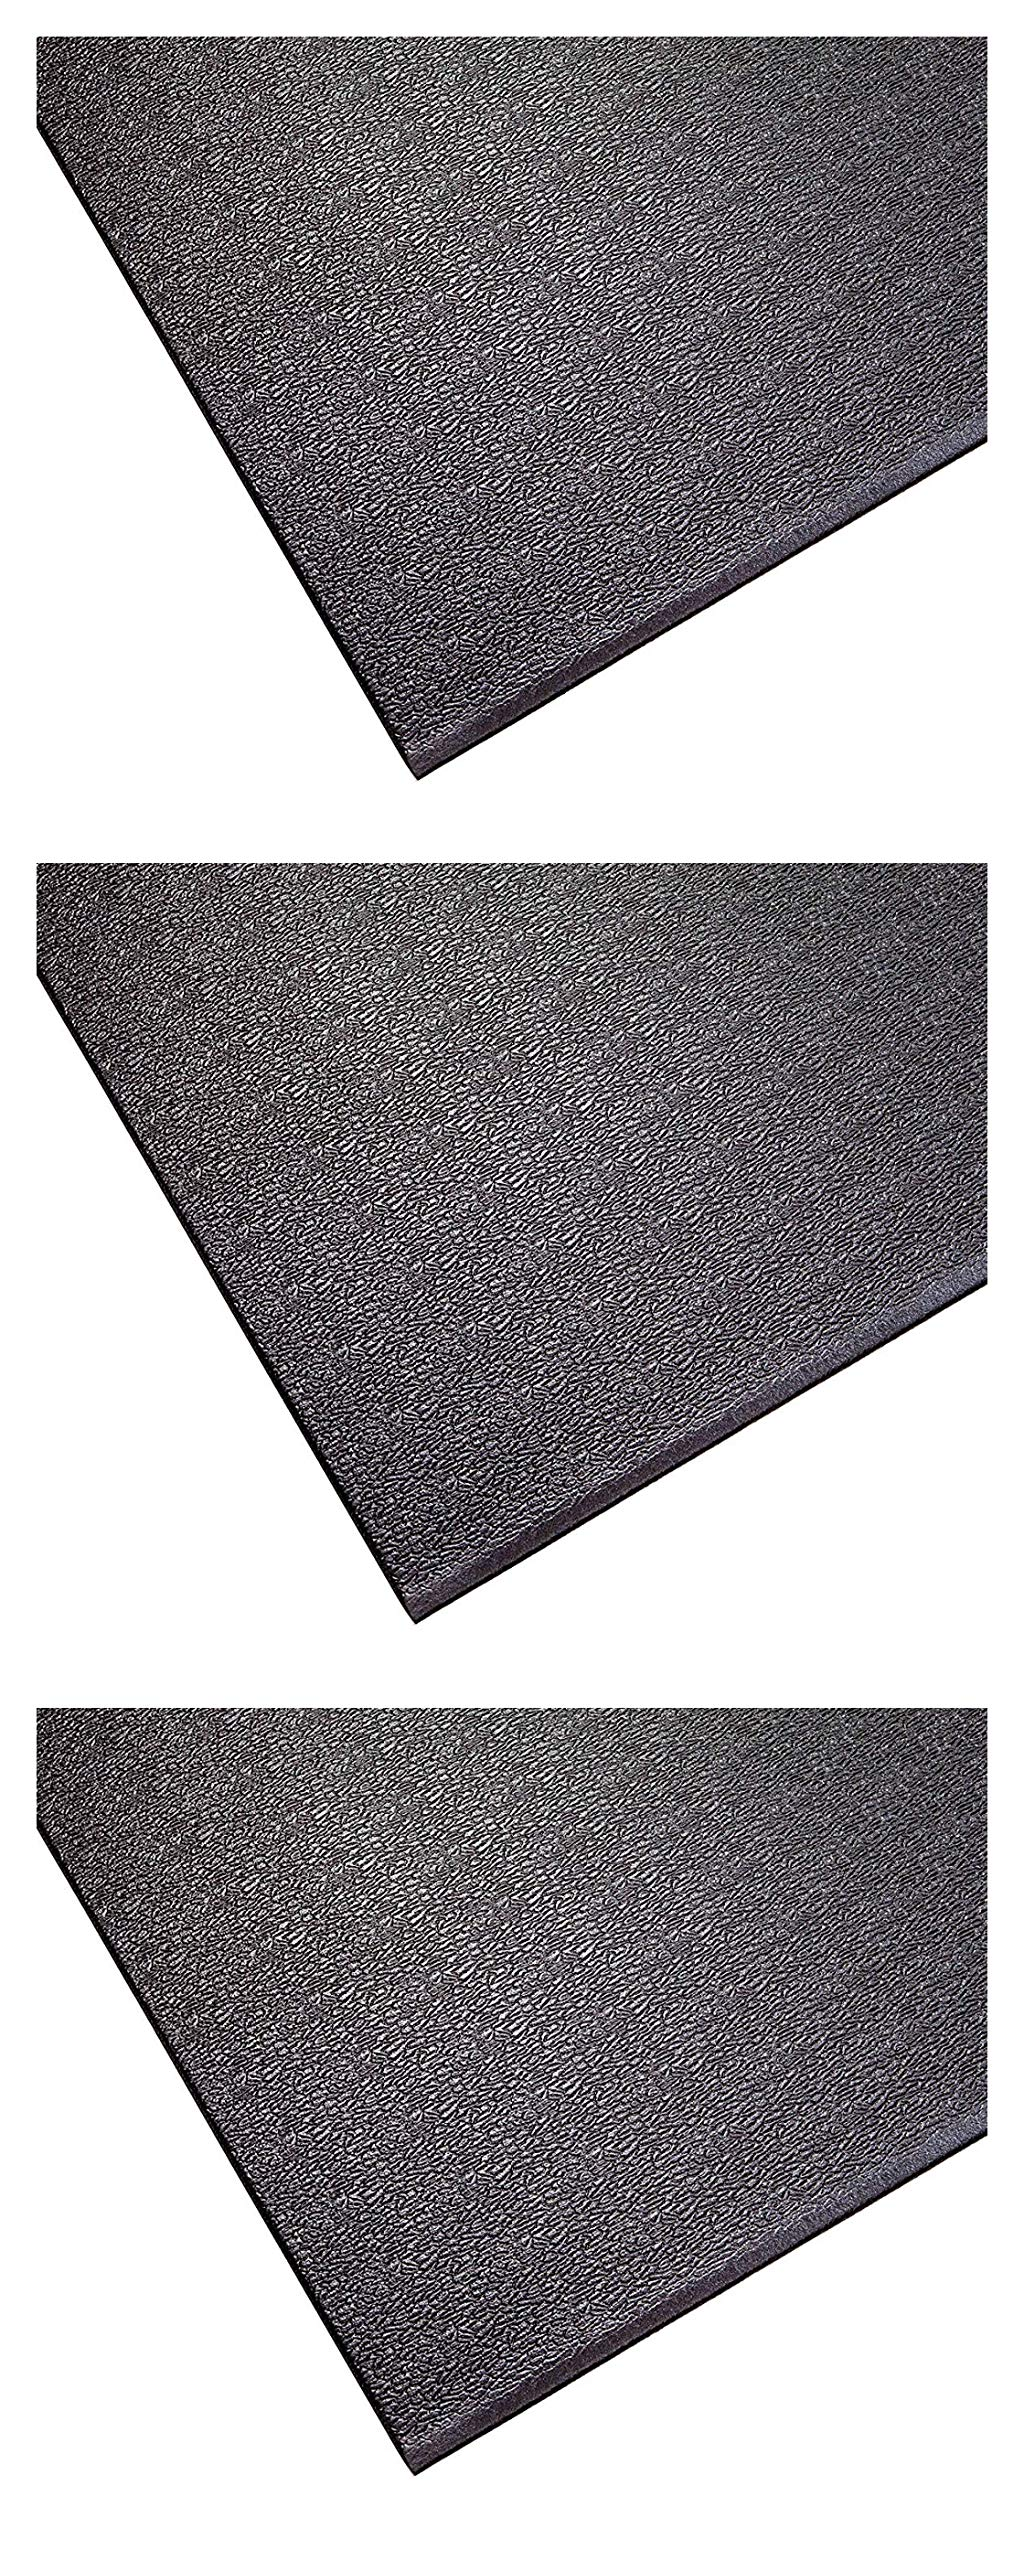 SuperMats Heavy Duty Equipment Mat 20GS Made in U.S.A. for Indoor Cycles Exercise Upright Bikes and Steppers (2 Feet x 3 Feet 10 in) (24-Inch x 46-Inch) (60.96 cm x 116.84 cm) (Тhrее Расk)